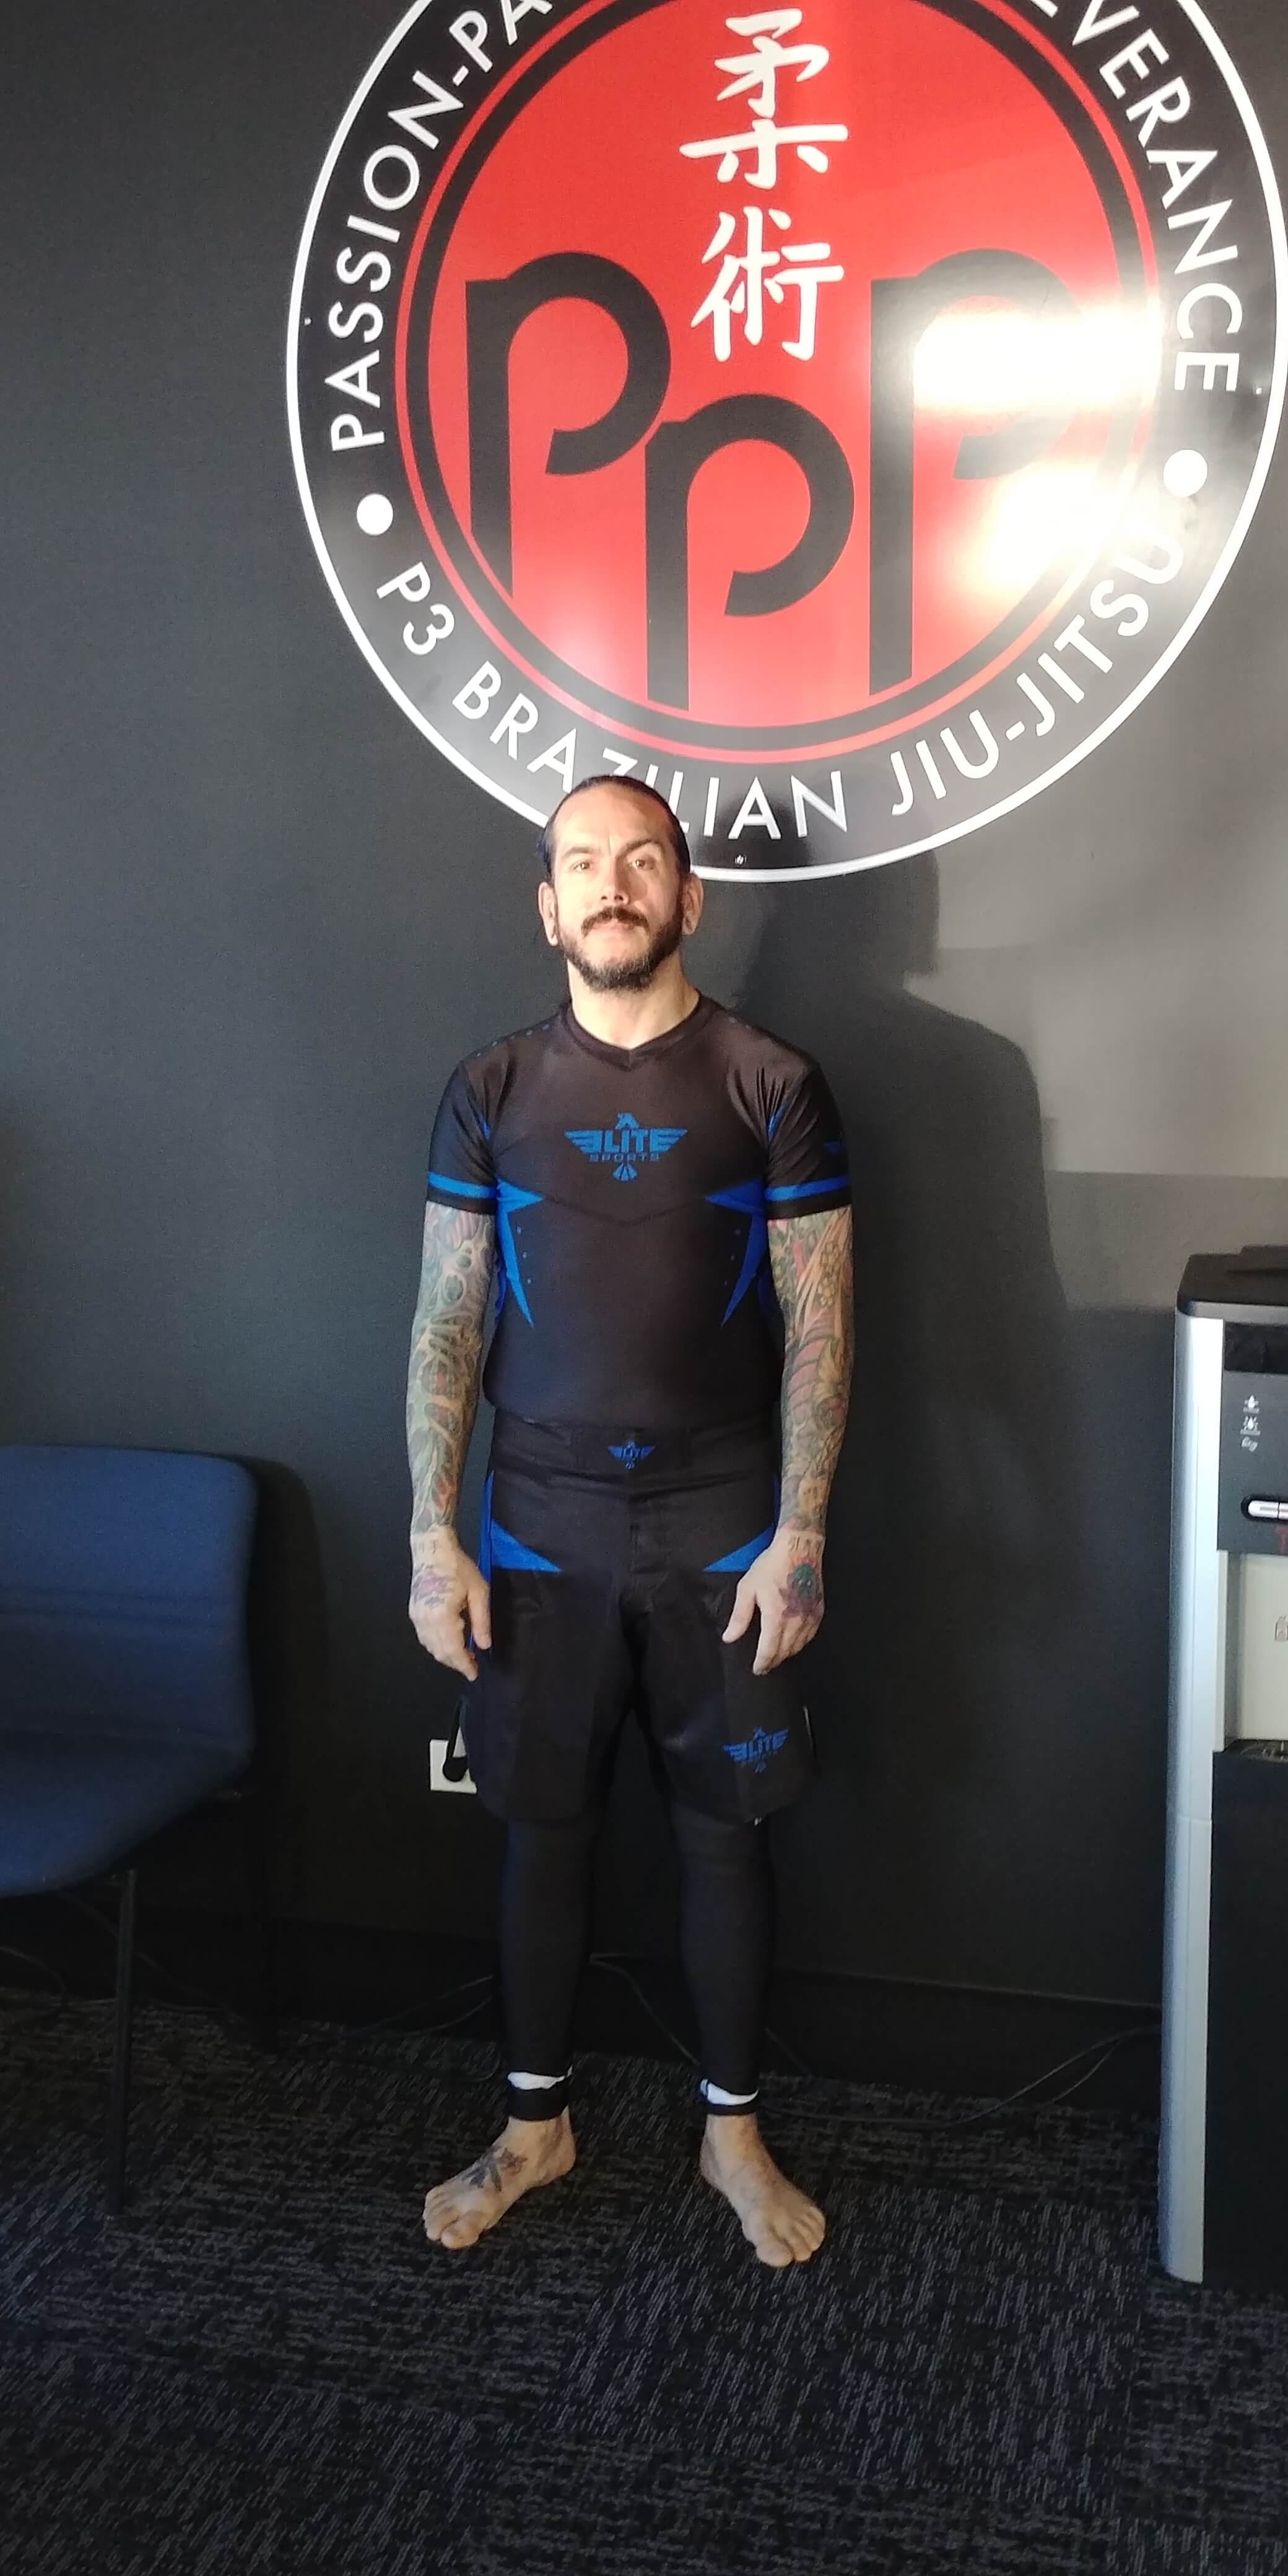 Elite-sports-Team-Elite-NO GI-John-A.-Byrne-image7.jpeg